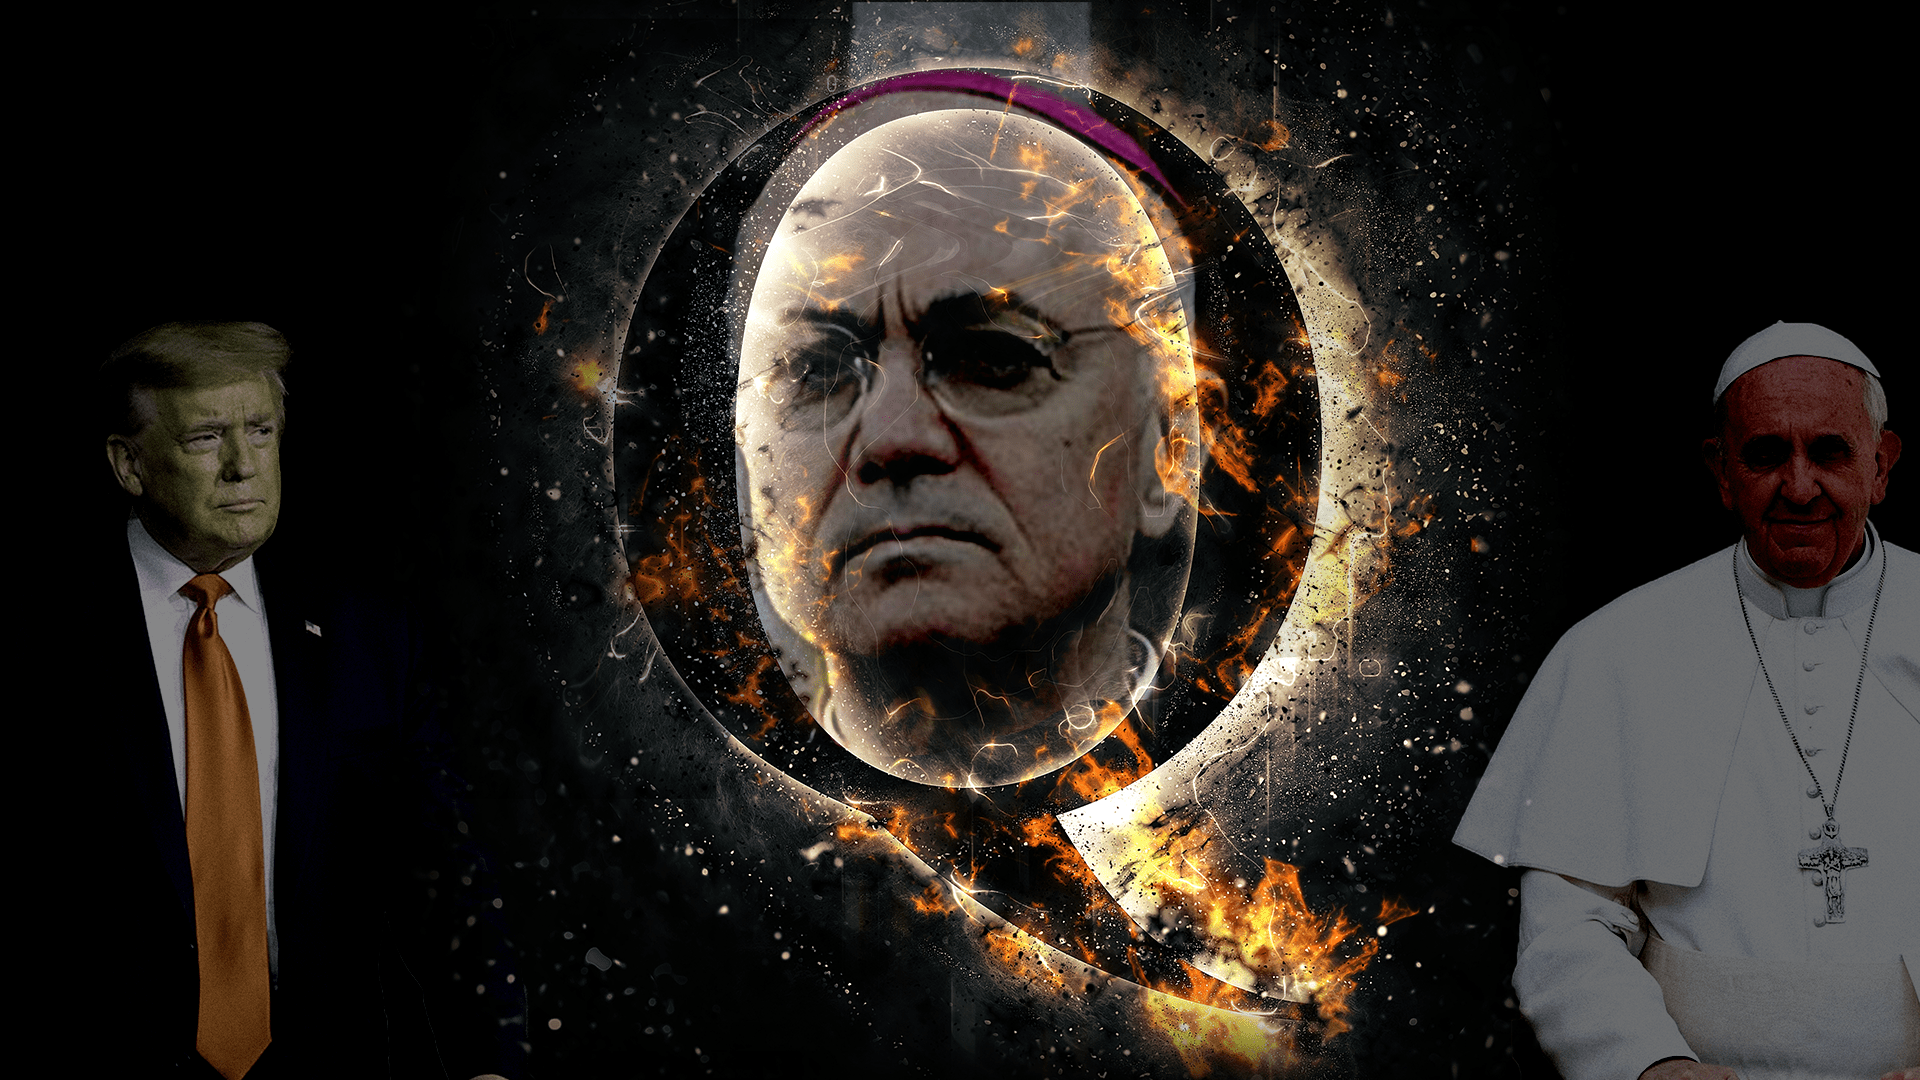 Viganò, QAnon, and the 'Deep Church' explained